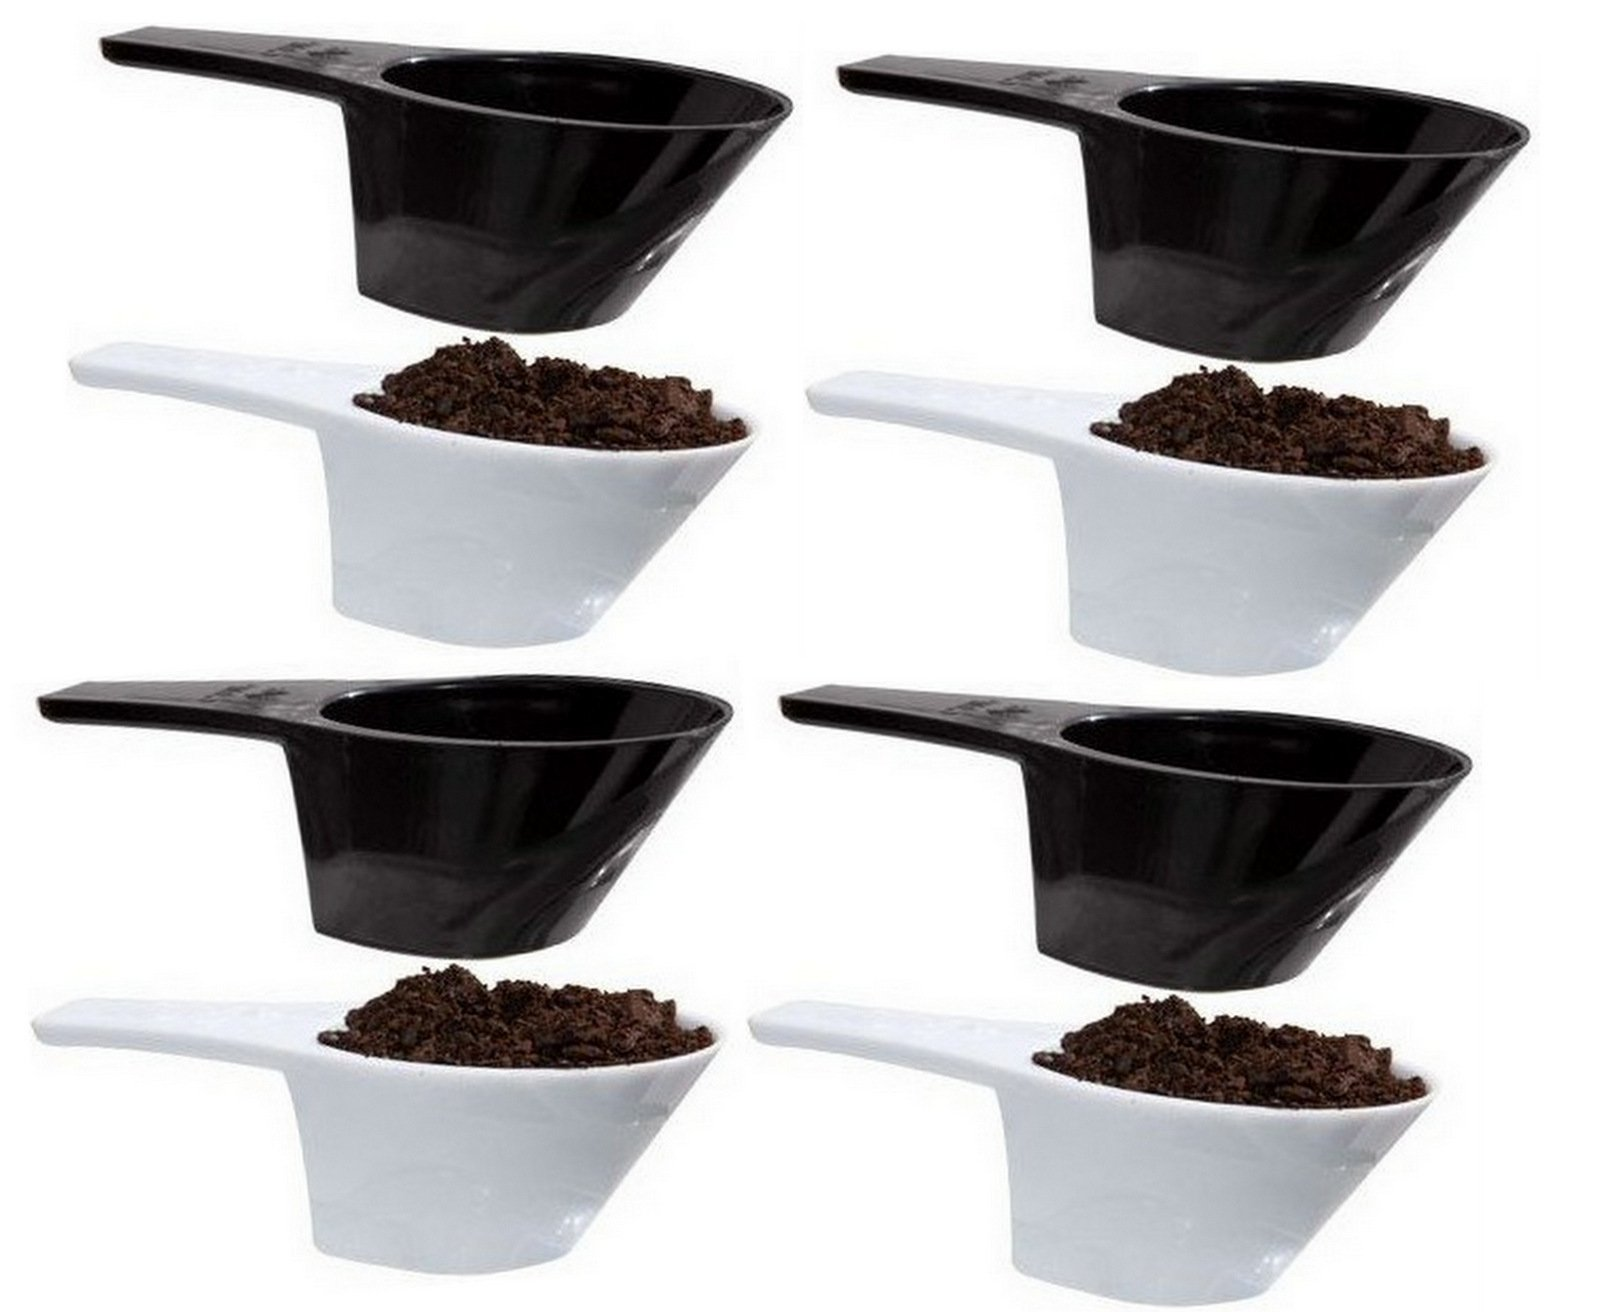 8p ALAZCO pc COFFEE MEASURING SCOOP 1/8 CUP - Make The Perfect Pot Of Coffee Right At Home - Coffee Sugar & Spice! - Kitchen Baking Measure Spice Herbs Sugar Flour Cocoa Powder Salt